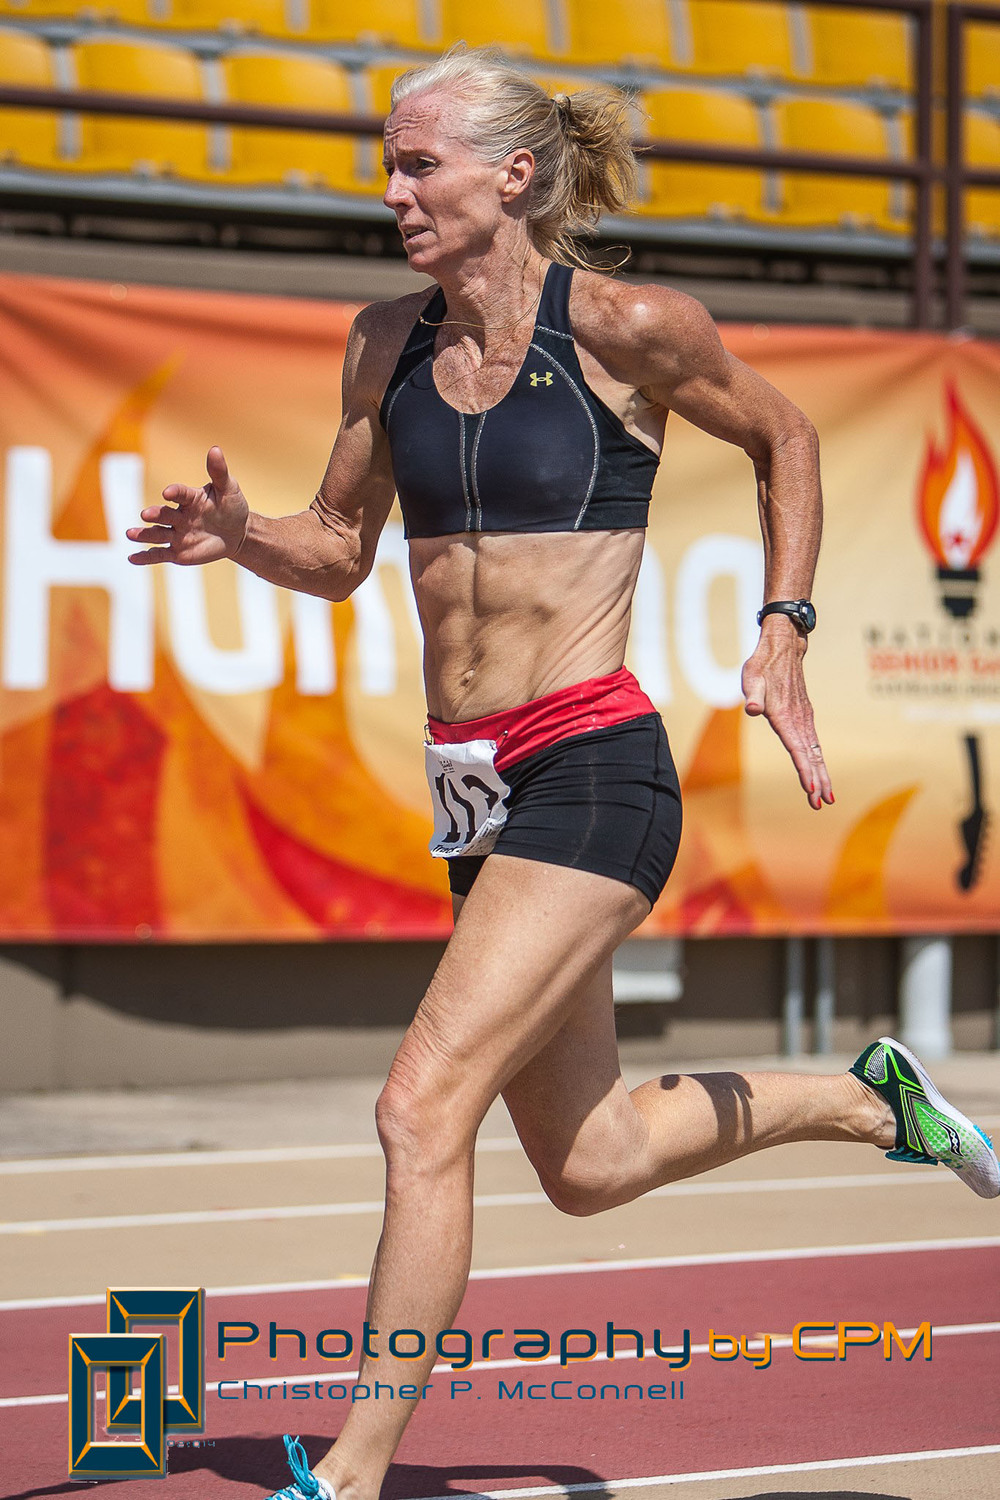 Fox competing at the 2014 National Senior Games Presented by Humana